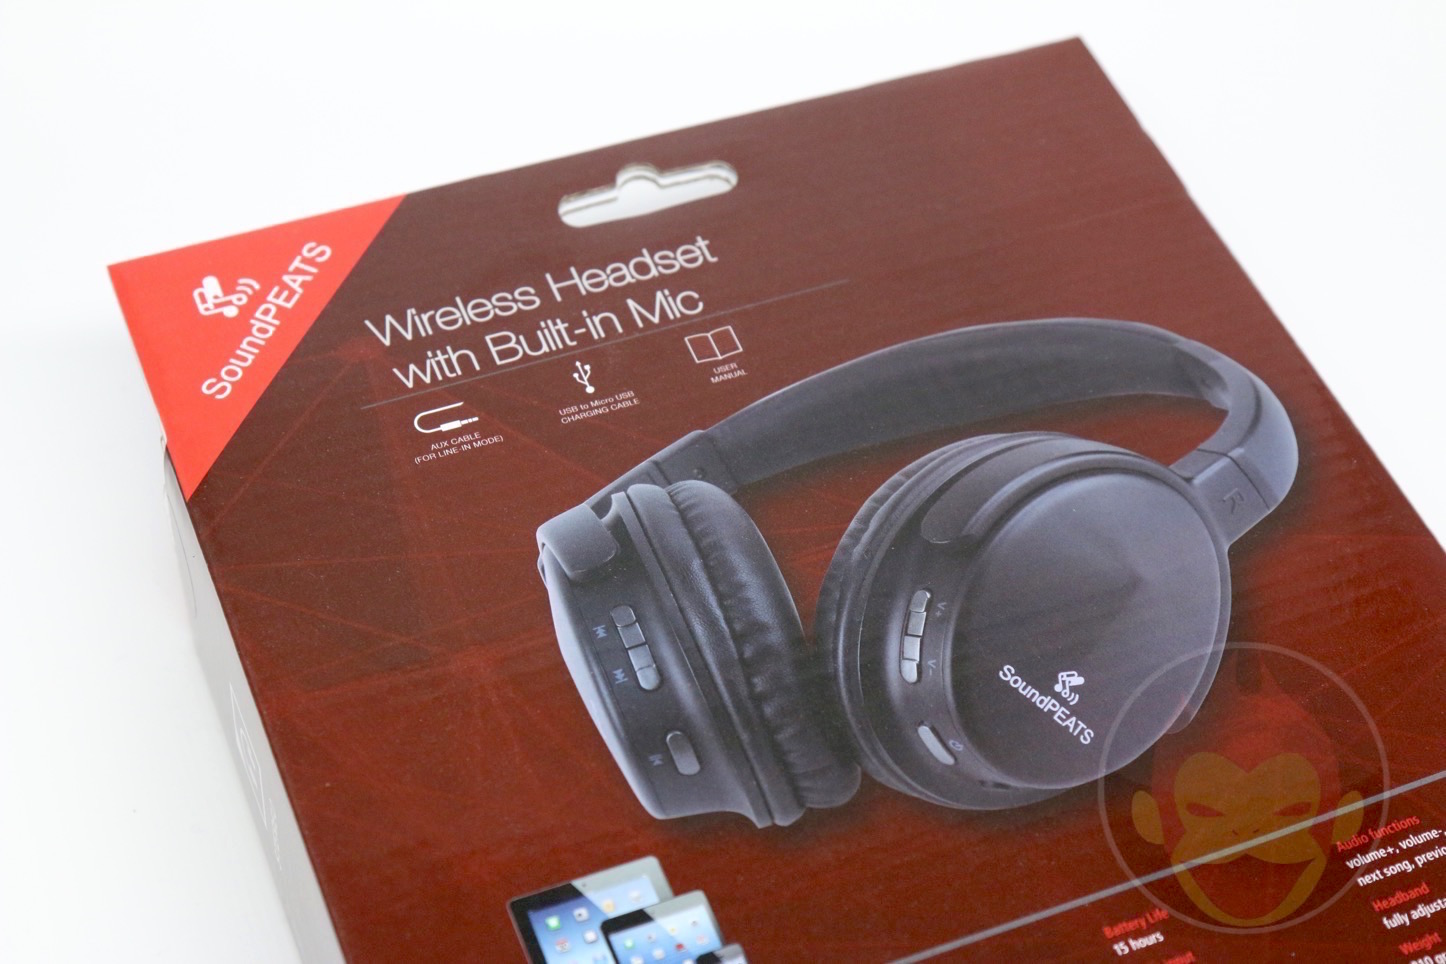 Soundpeats A1 Wireless Headphones